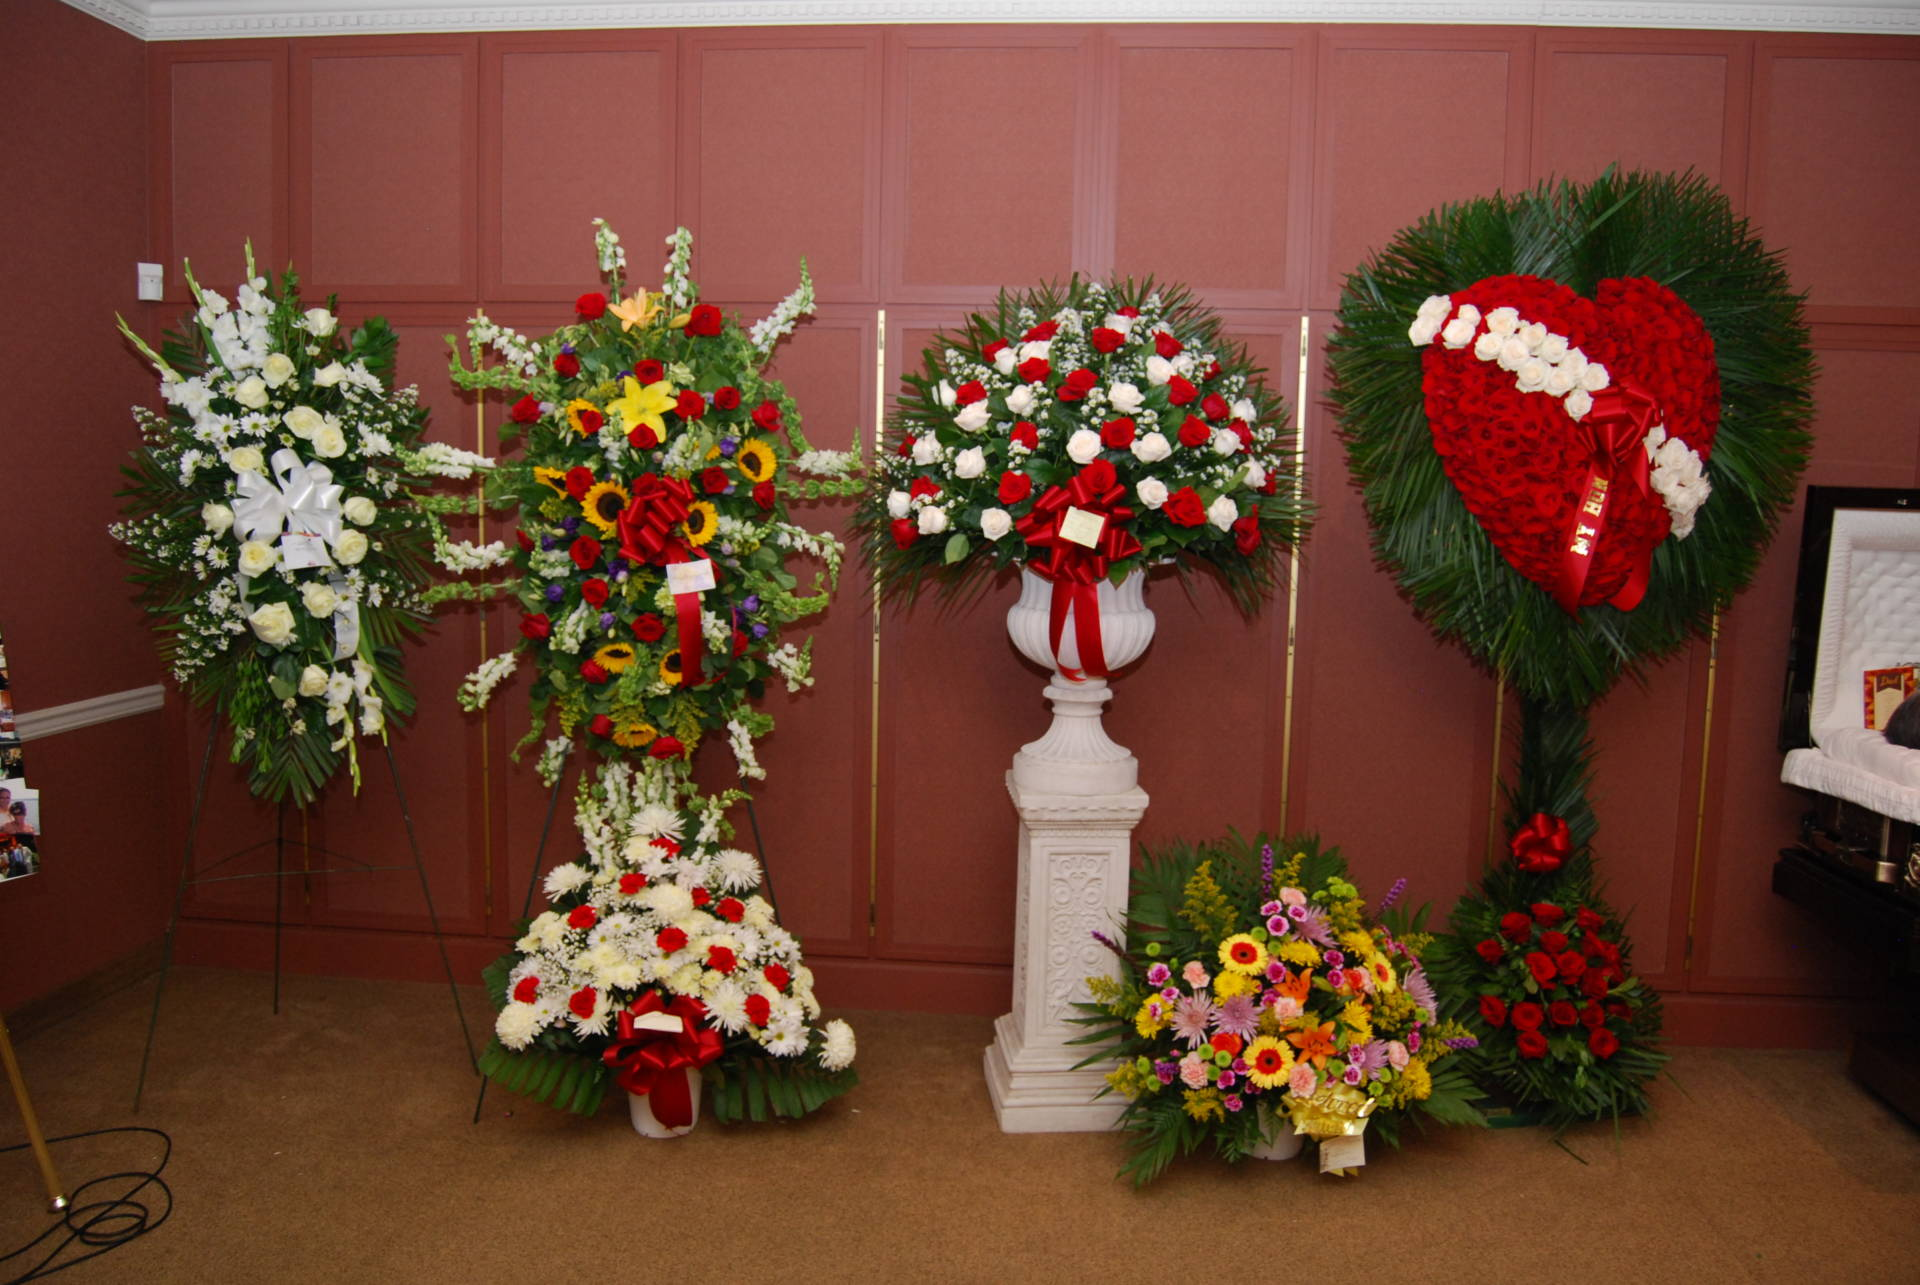 5 important notes on sending funeral flowers matthew florist view larger image izmirmasajfo